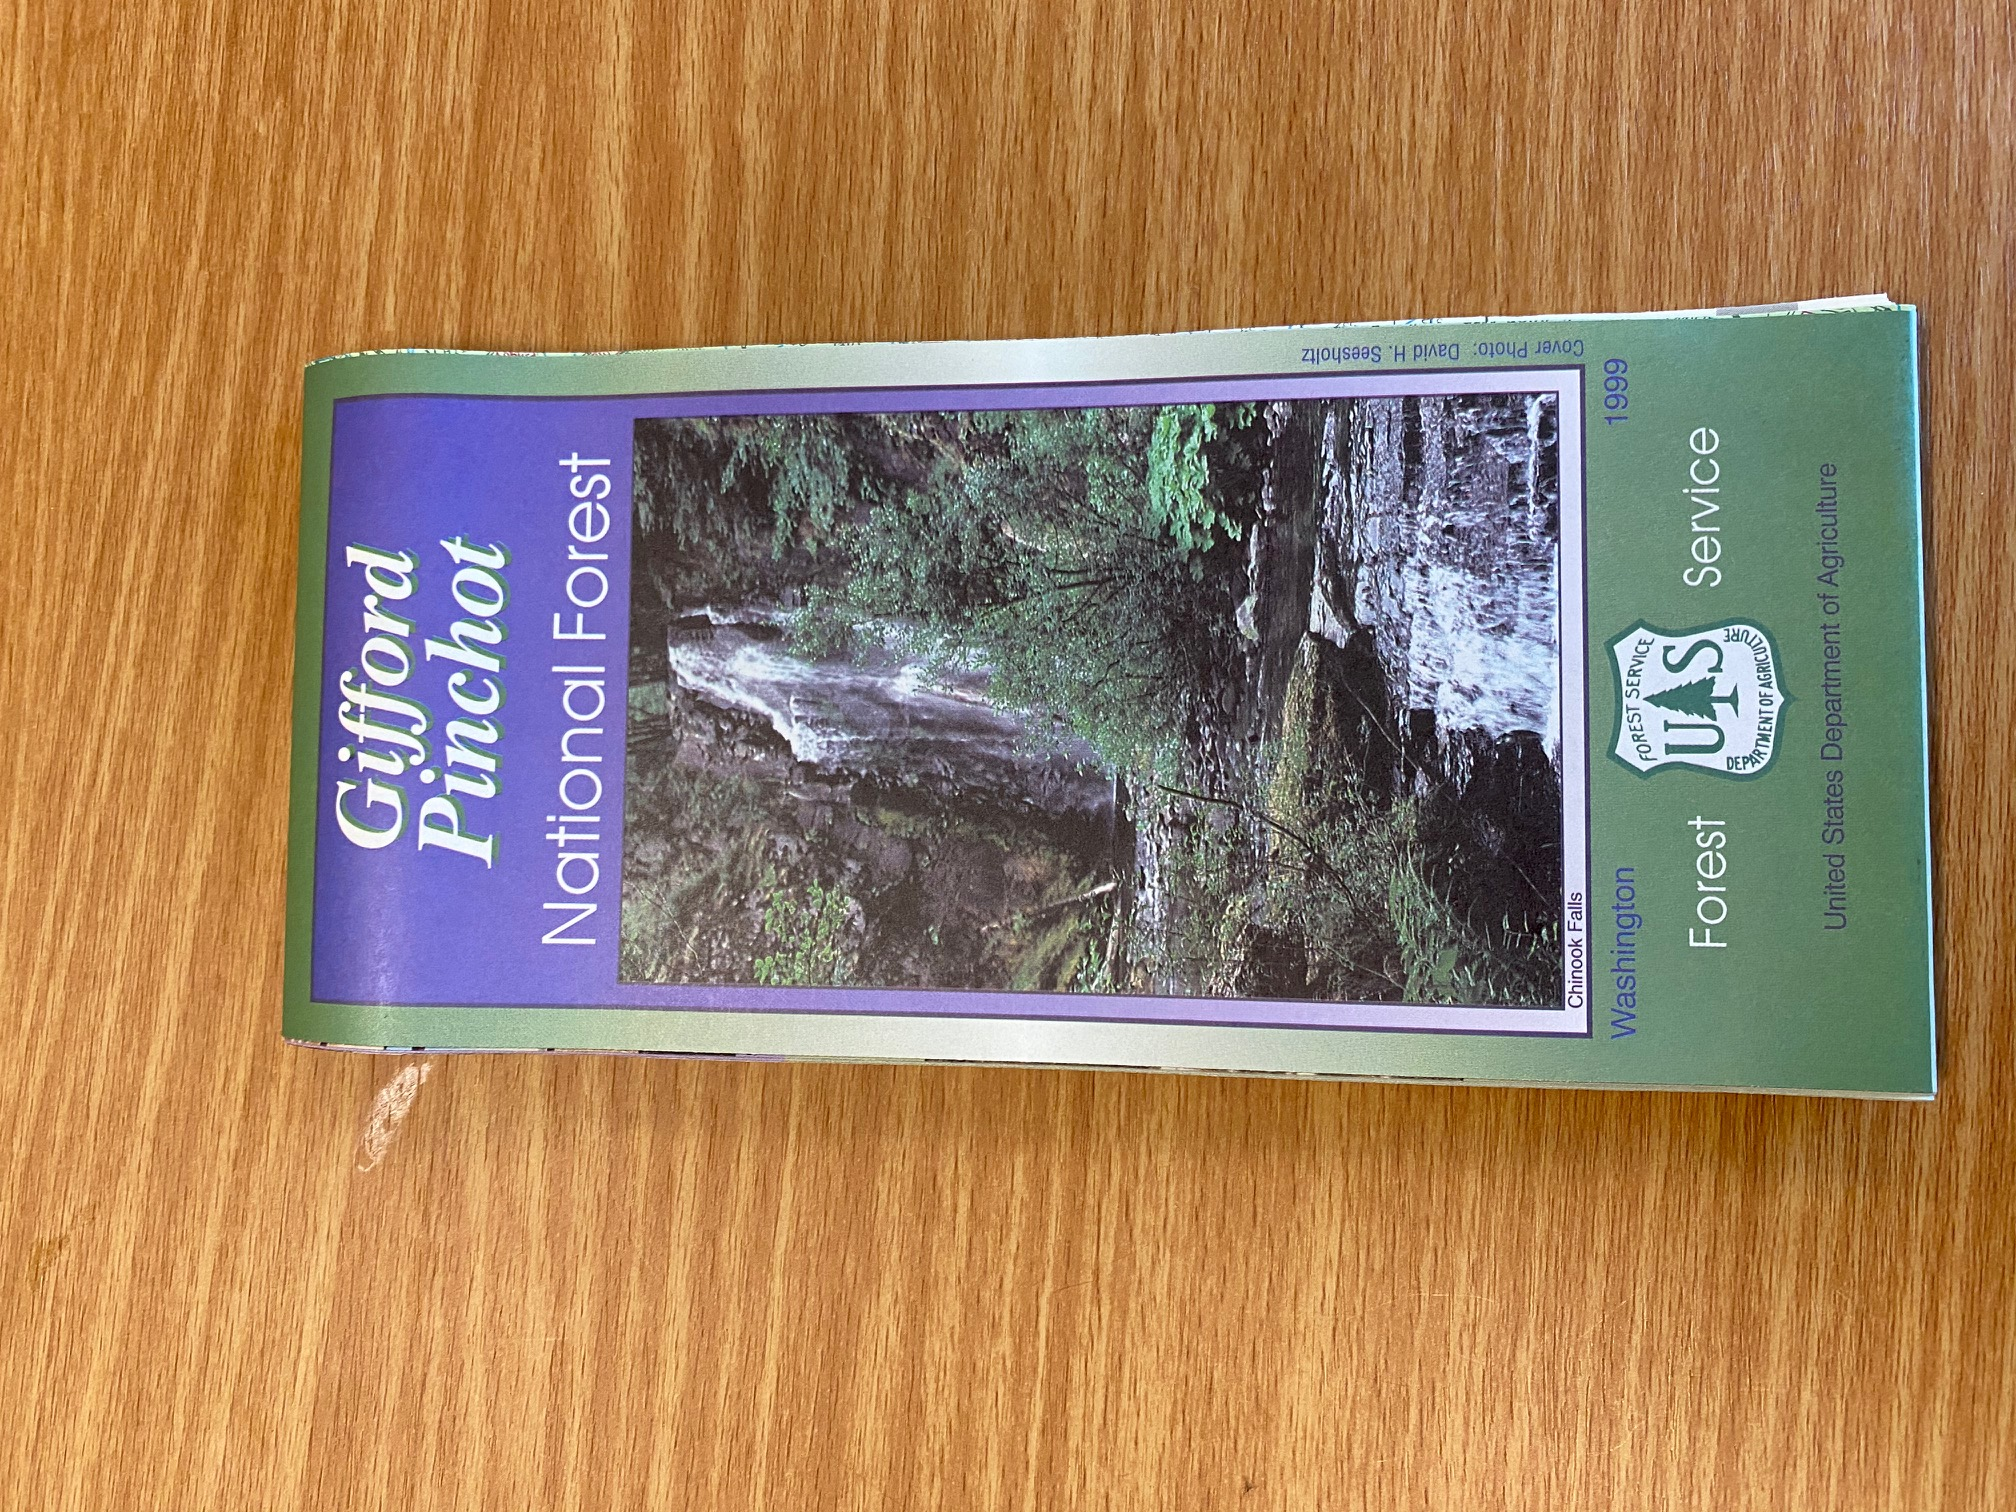 Gifford Pinchot National Forest map